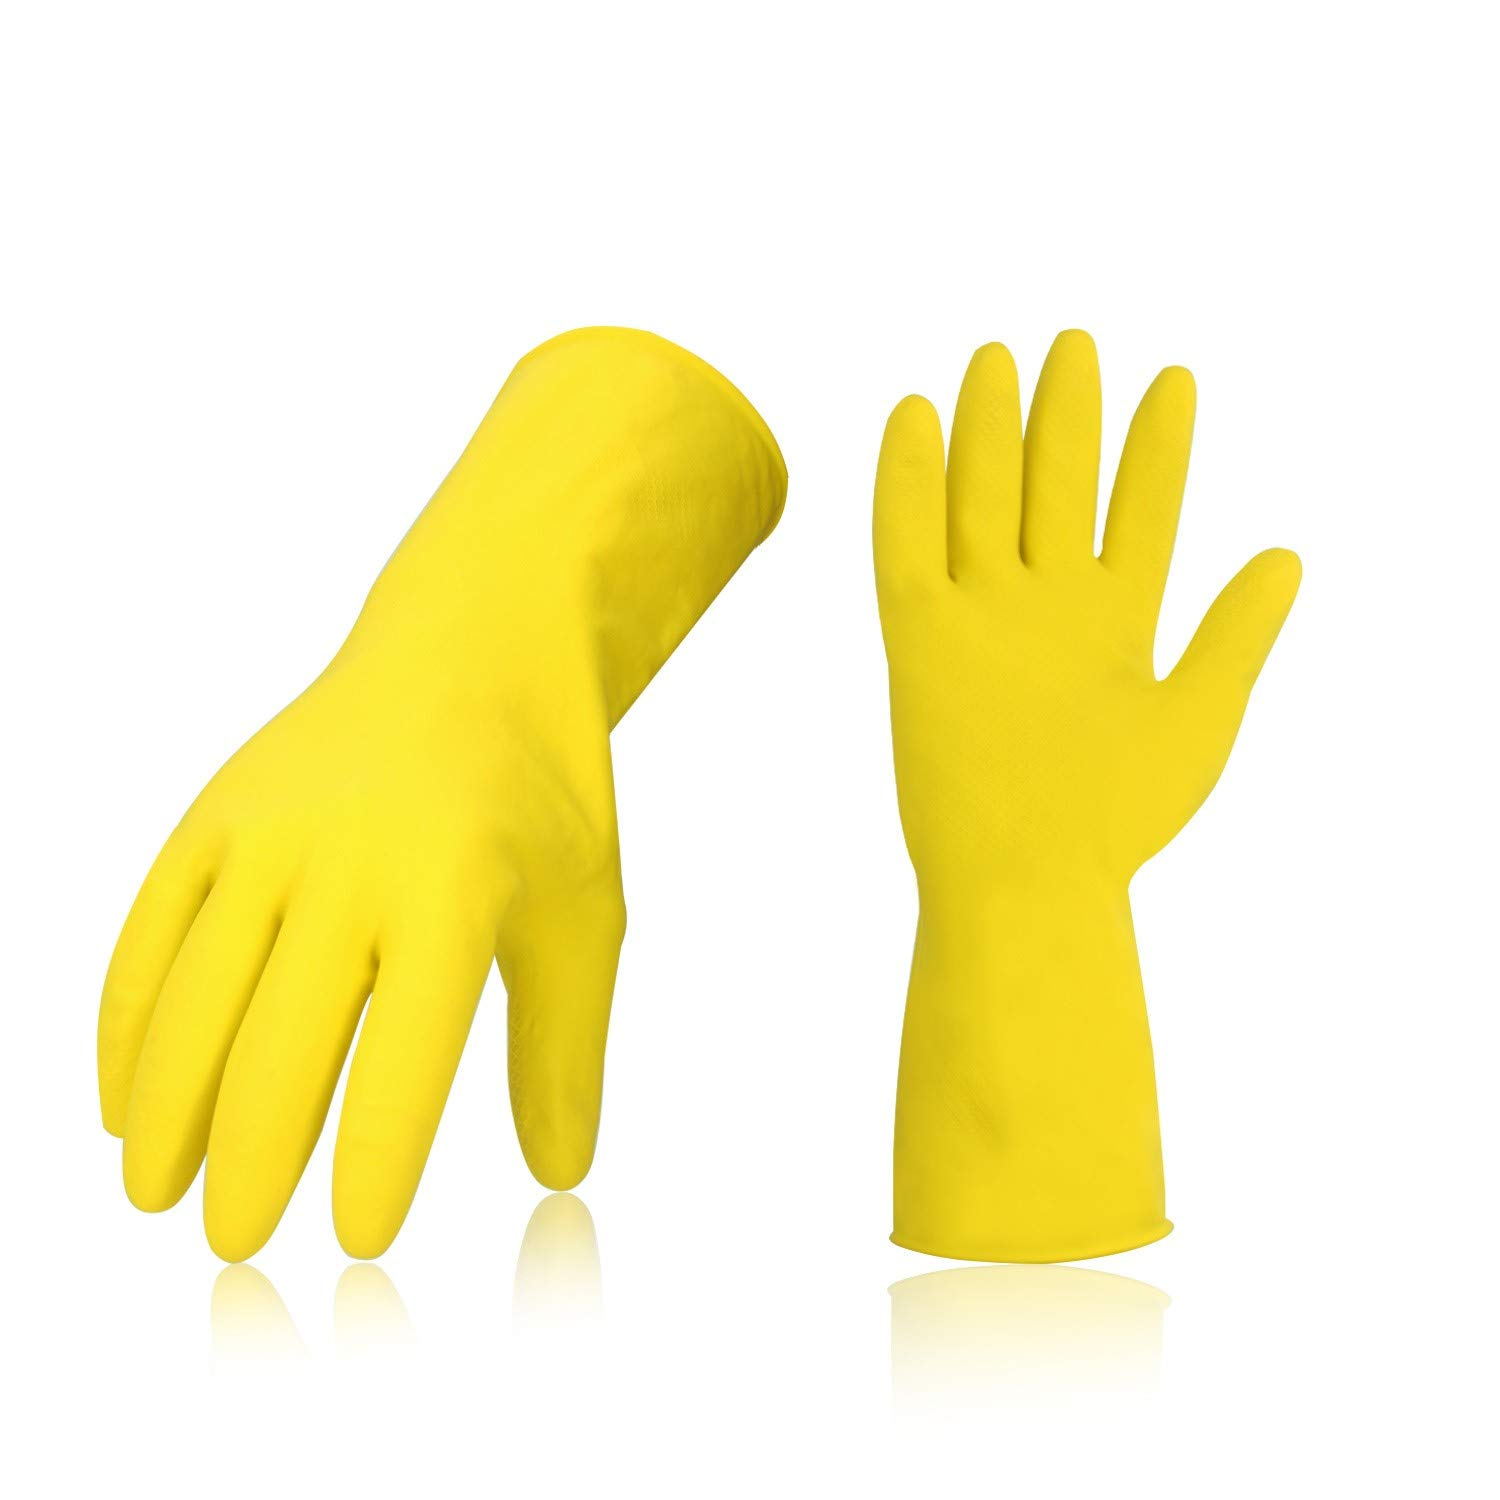 Vgo 10 Pairs Reusable Household Cleaning Dishwashing Kitchen Glove, Long Sleeve Thin Latex Working, Painting, Gardening Gloves, Pet Care(10 Pairs, Size L, Yellow, HH4602)